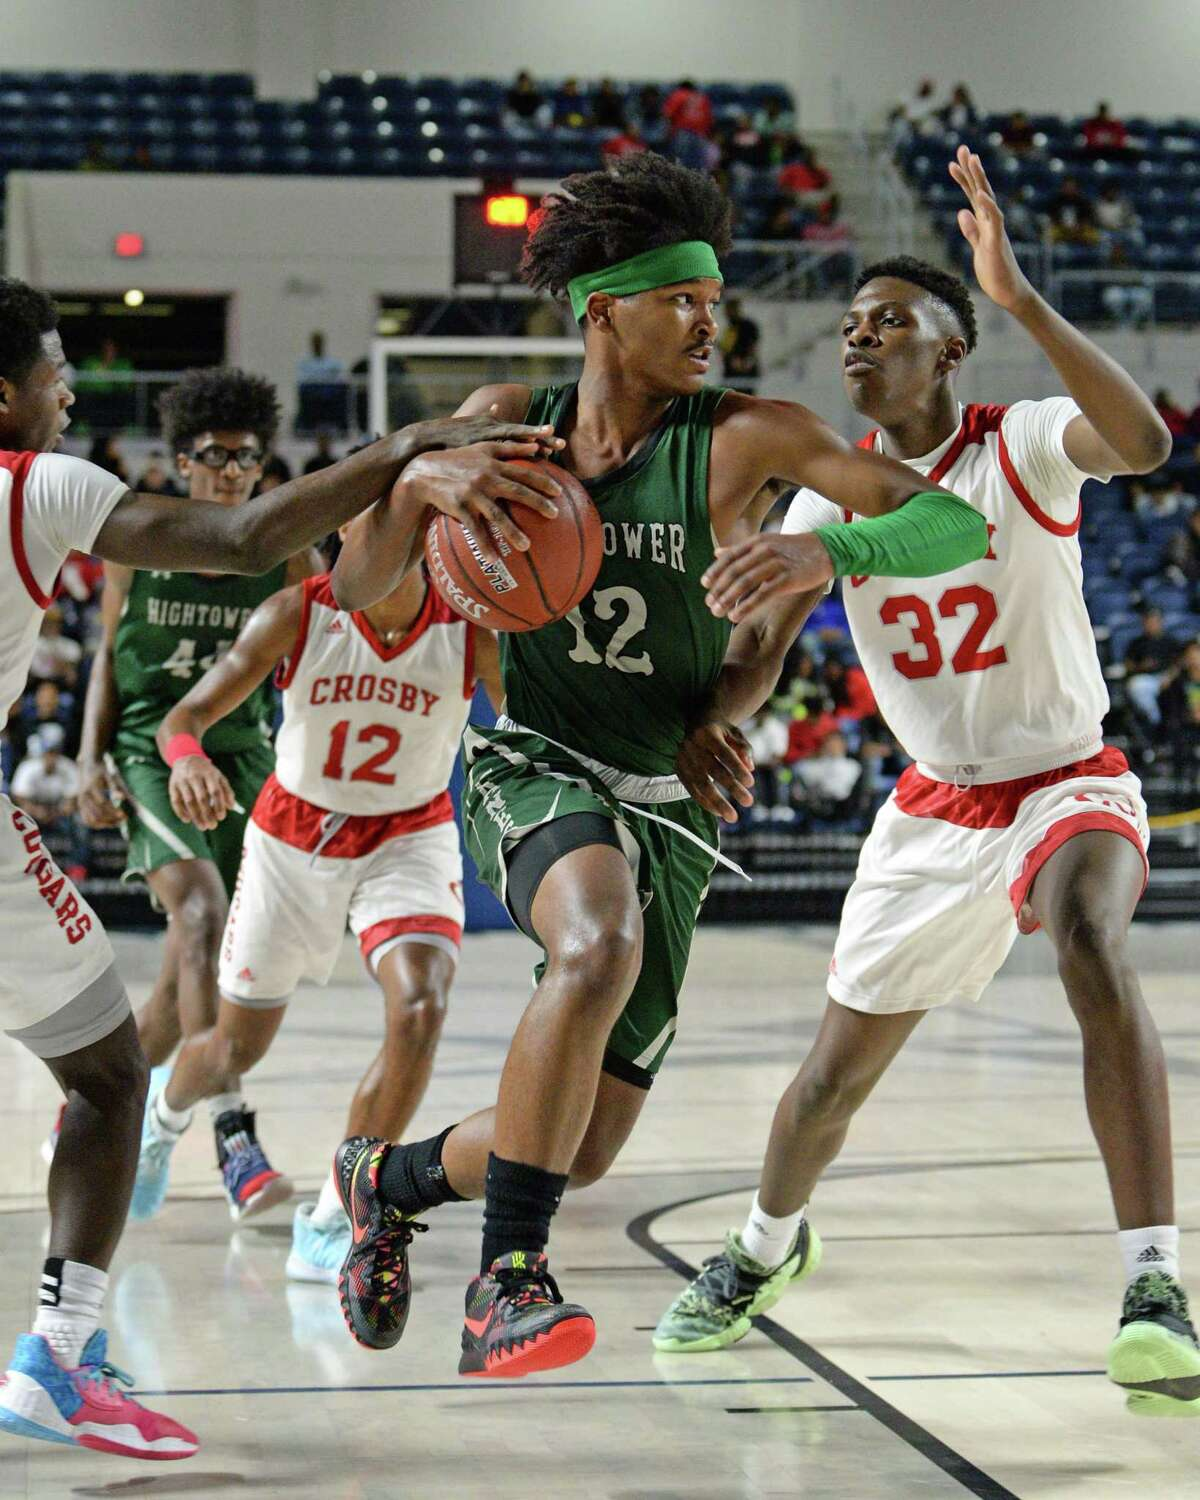 Bryce Griggs (12) of Hightower drives between multiple cougar defenders during the third quarter of the Boys 5A Region III Quarterfinal basketball game between the Hightower Hurricanes and the Crosby Cougars on Tuesday, March 3, 2020 at Delmar Fieldhouse, Houston, TX.